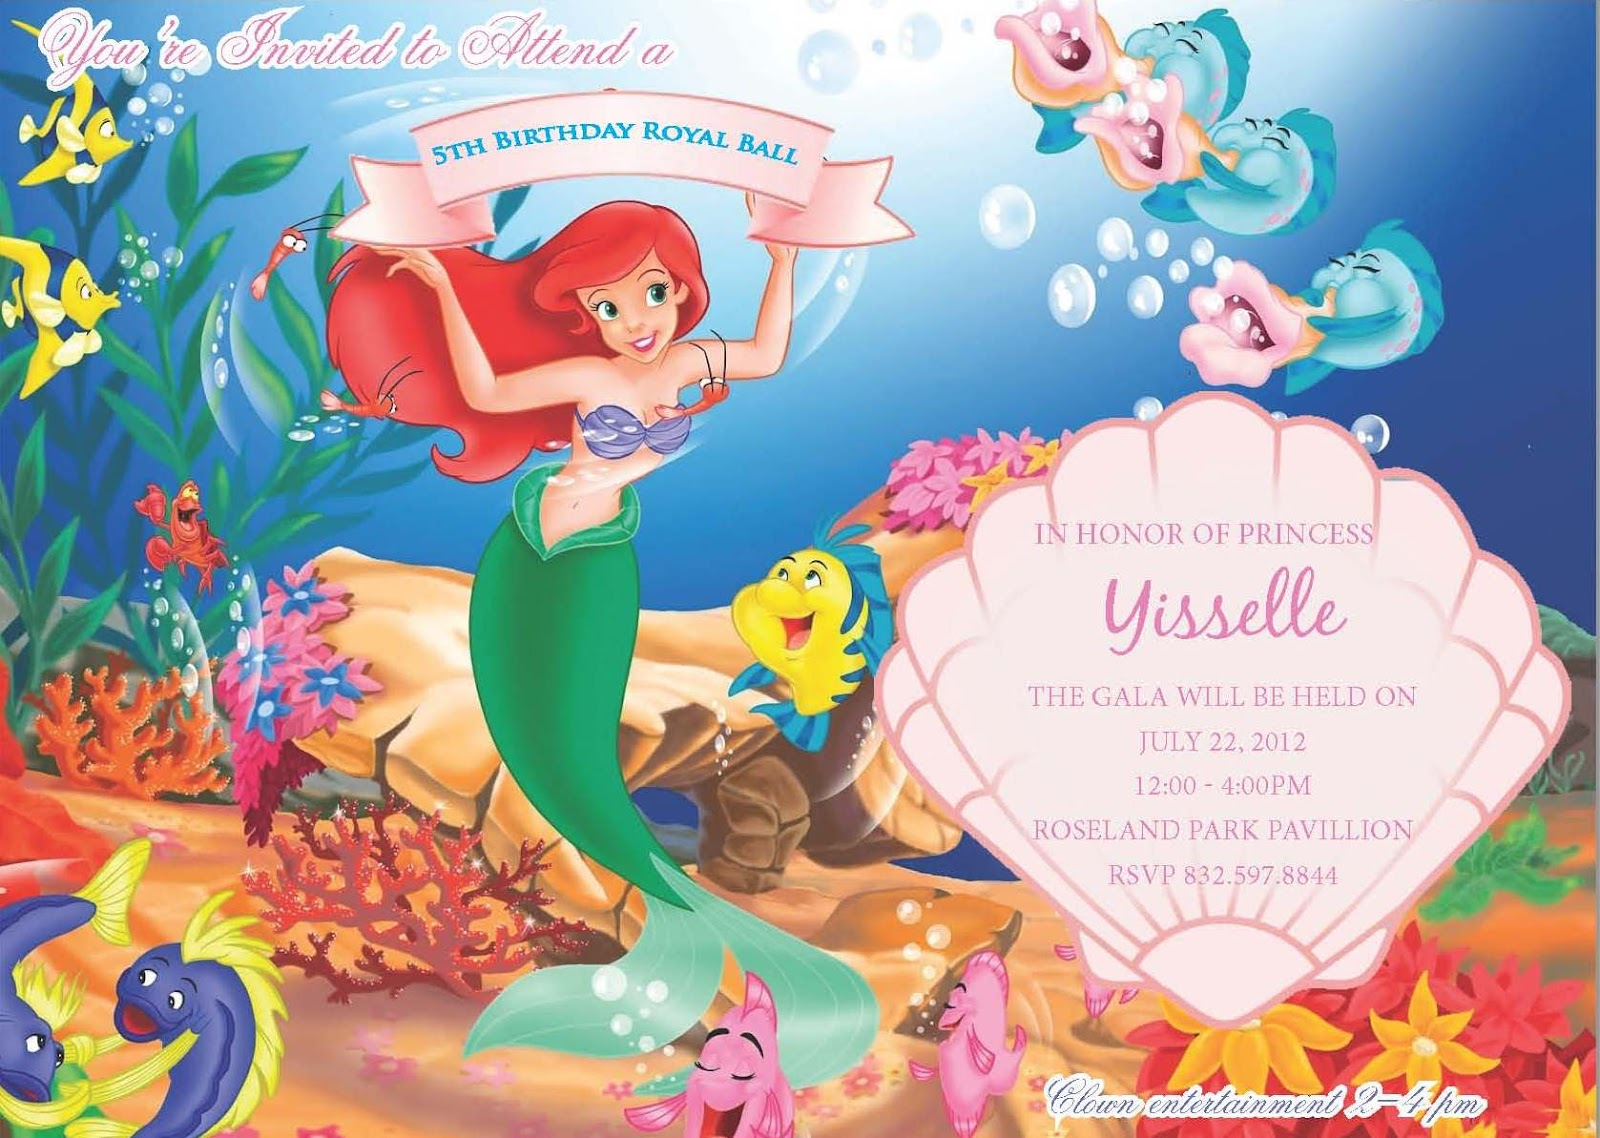 Little mermaid templates image collections templates design ideas little mermaid template gallery templates design ideas little mermaid invitation template page 4 fallcreekonline little mermaid monicamarmolfo Images